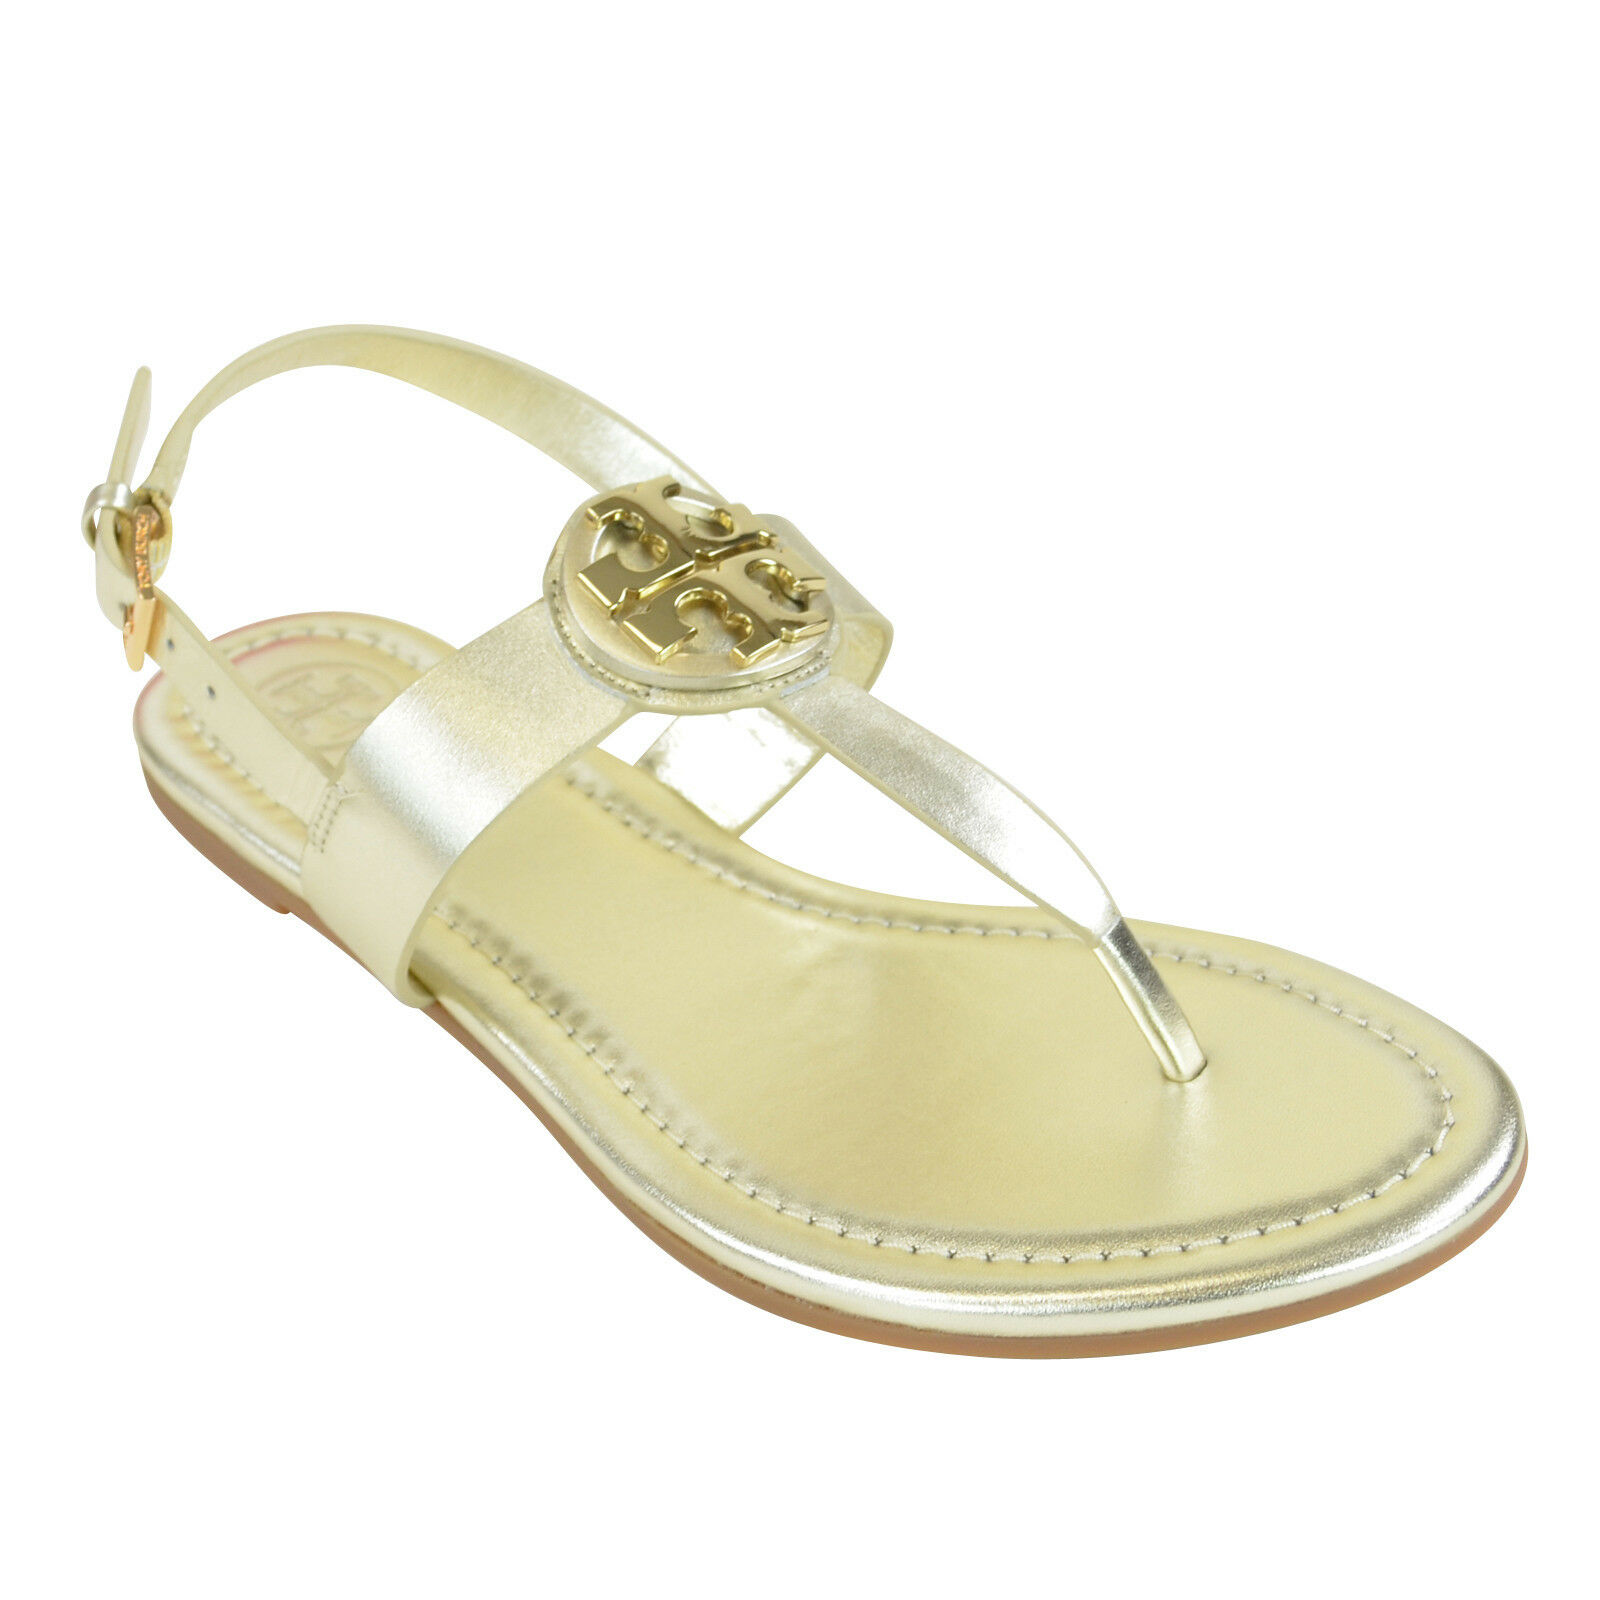 Tory Burch Bryce Flate Thong Sandal  Vegan Leather in Spark oro 9